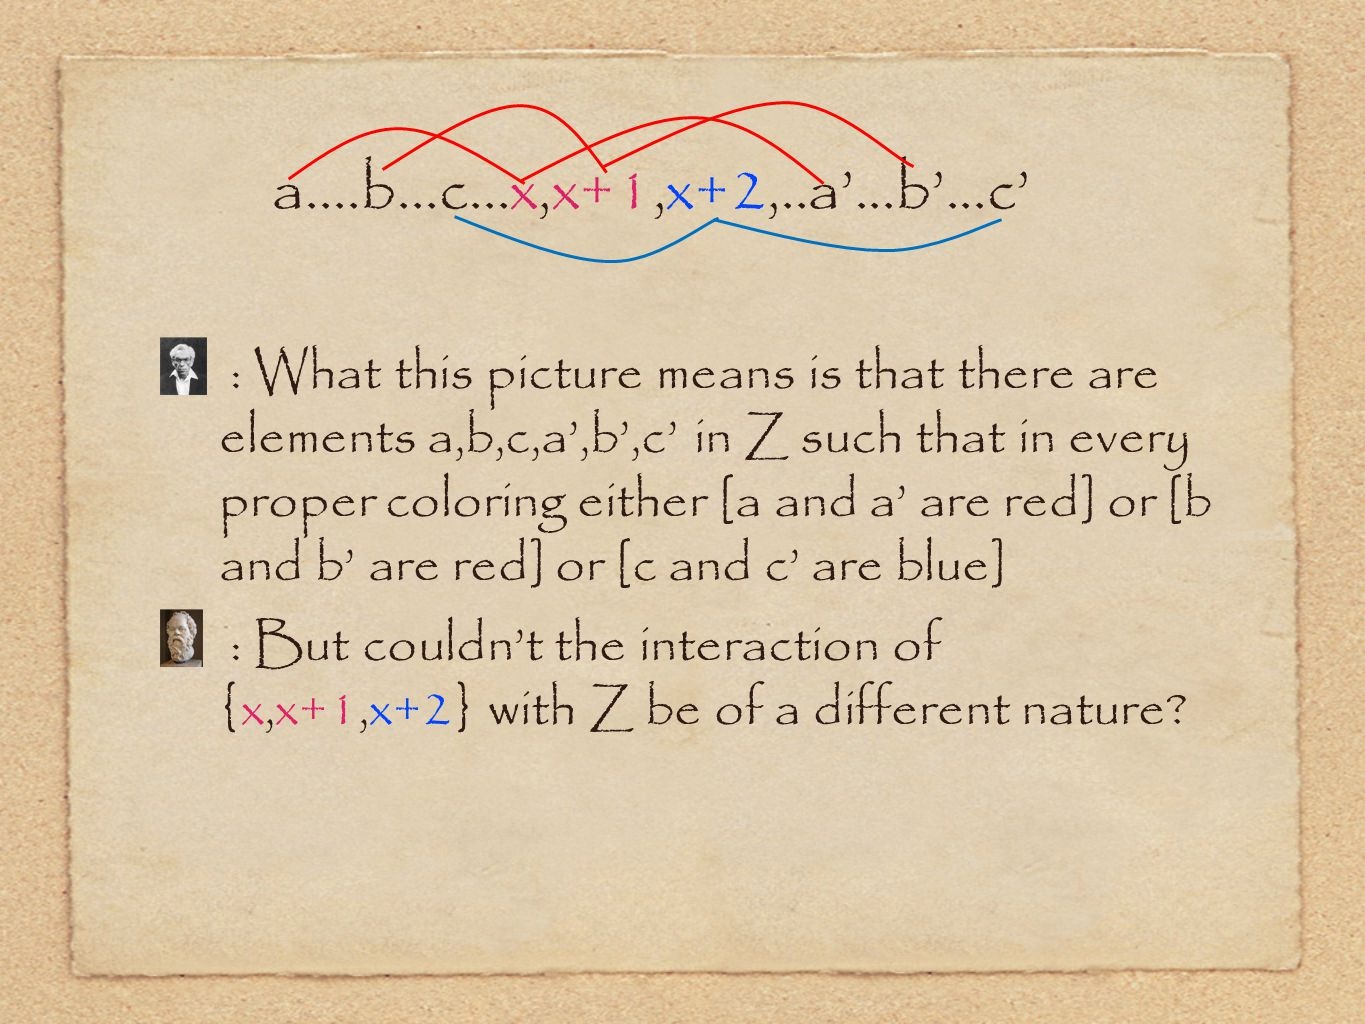 : What this picture means is that there are elements a,b,c,a',b',c' in Z such that in every proper coloring either [a and a' are red] or [b and b' are red] or [c and c' are blue] : But couldn't the interaction of {x,x+1,x+2} with Z be of a different nature.